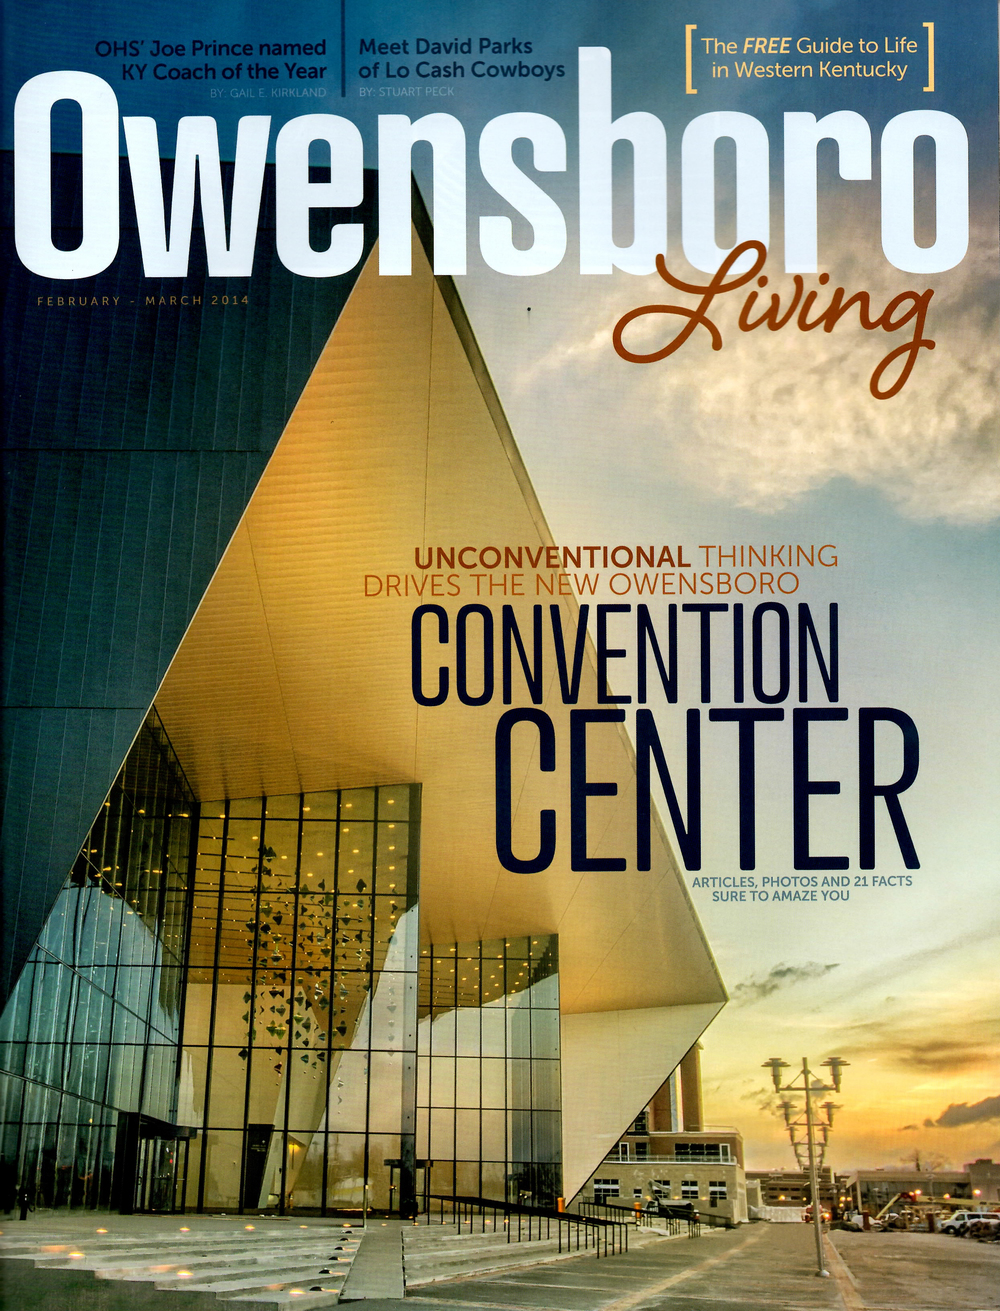 'David Parks is marching to his own beat' Owensboro Living magazine - February 2014